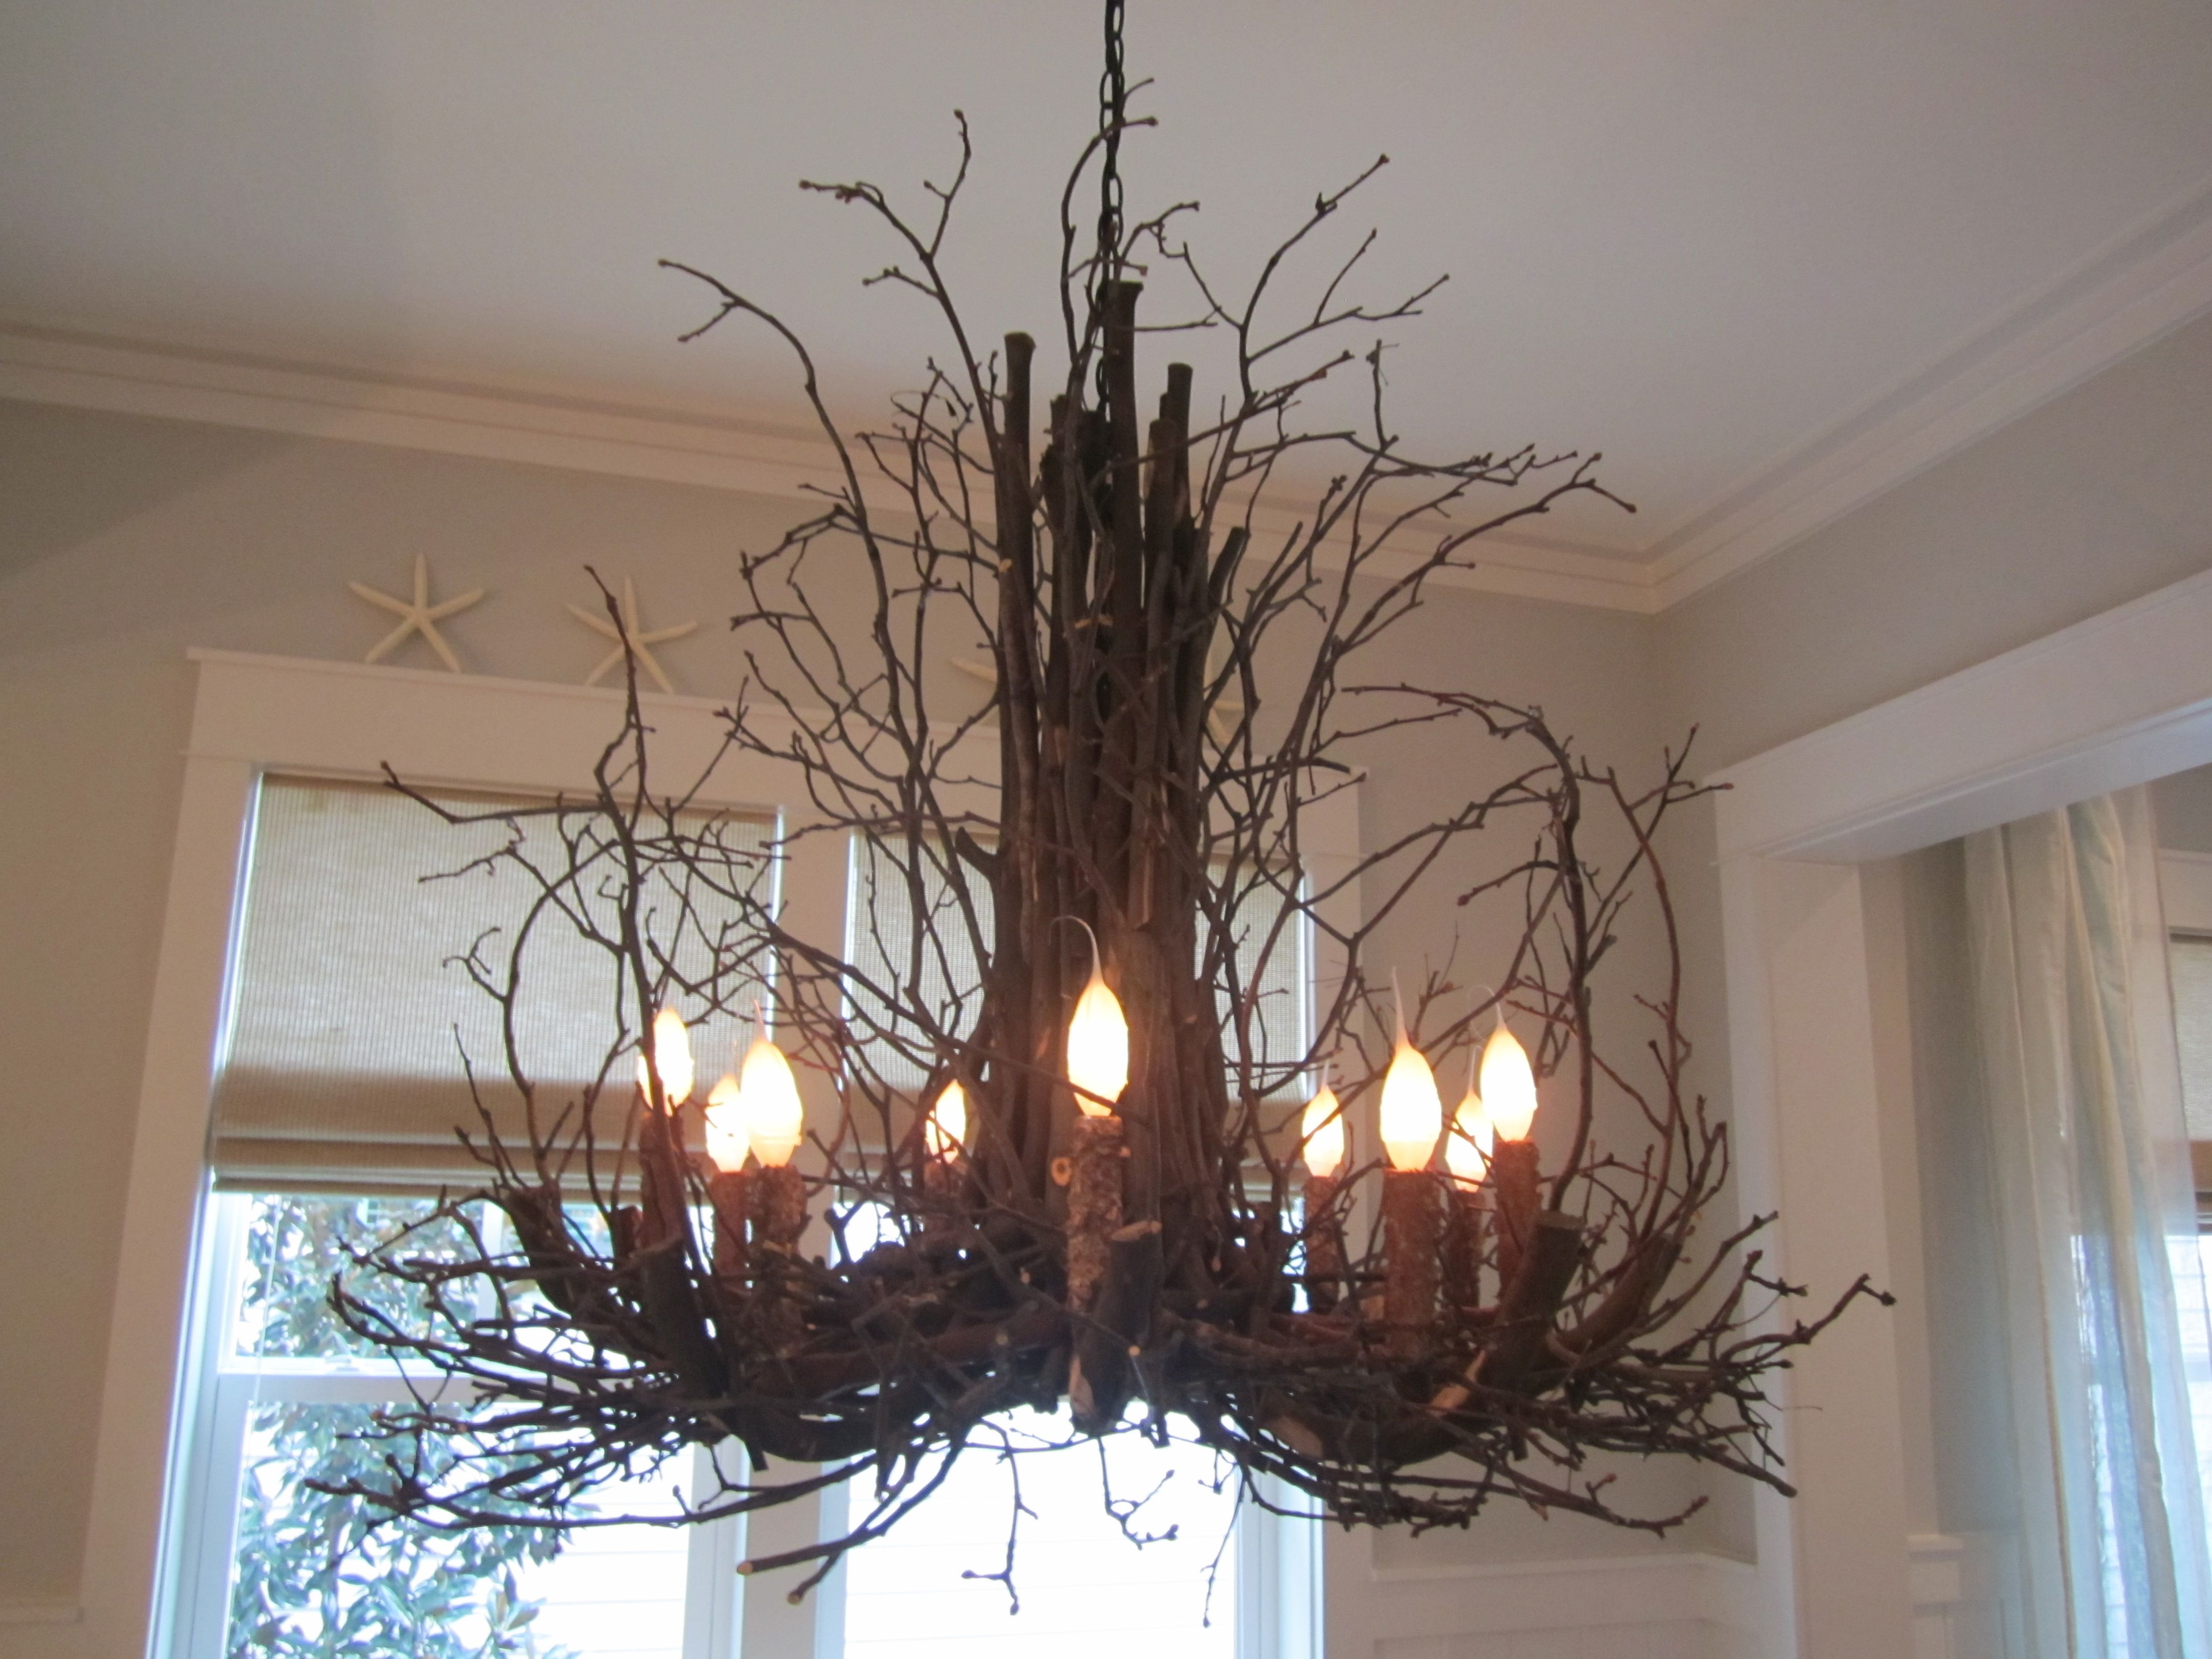 Gorgeous Twig Chandelier Decorations For Home : Beautiful Twig Chandelier Decorations Ideas